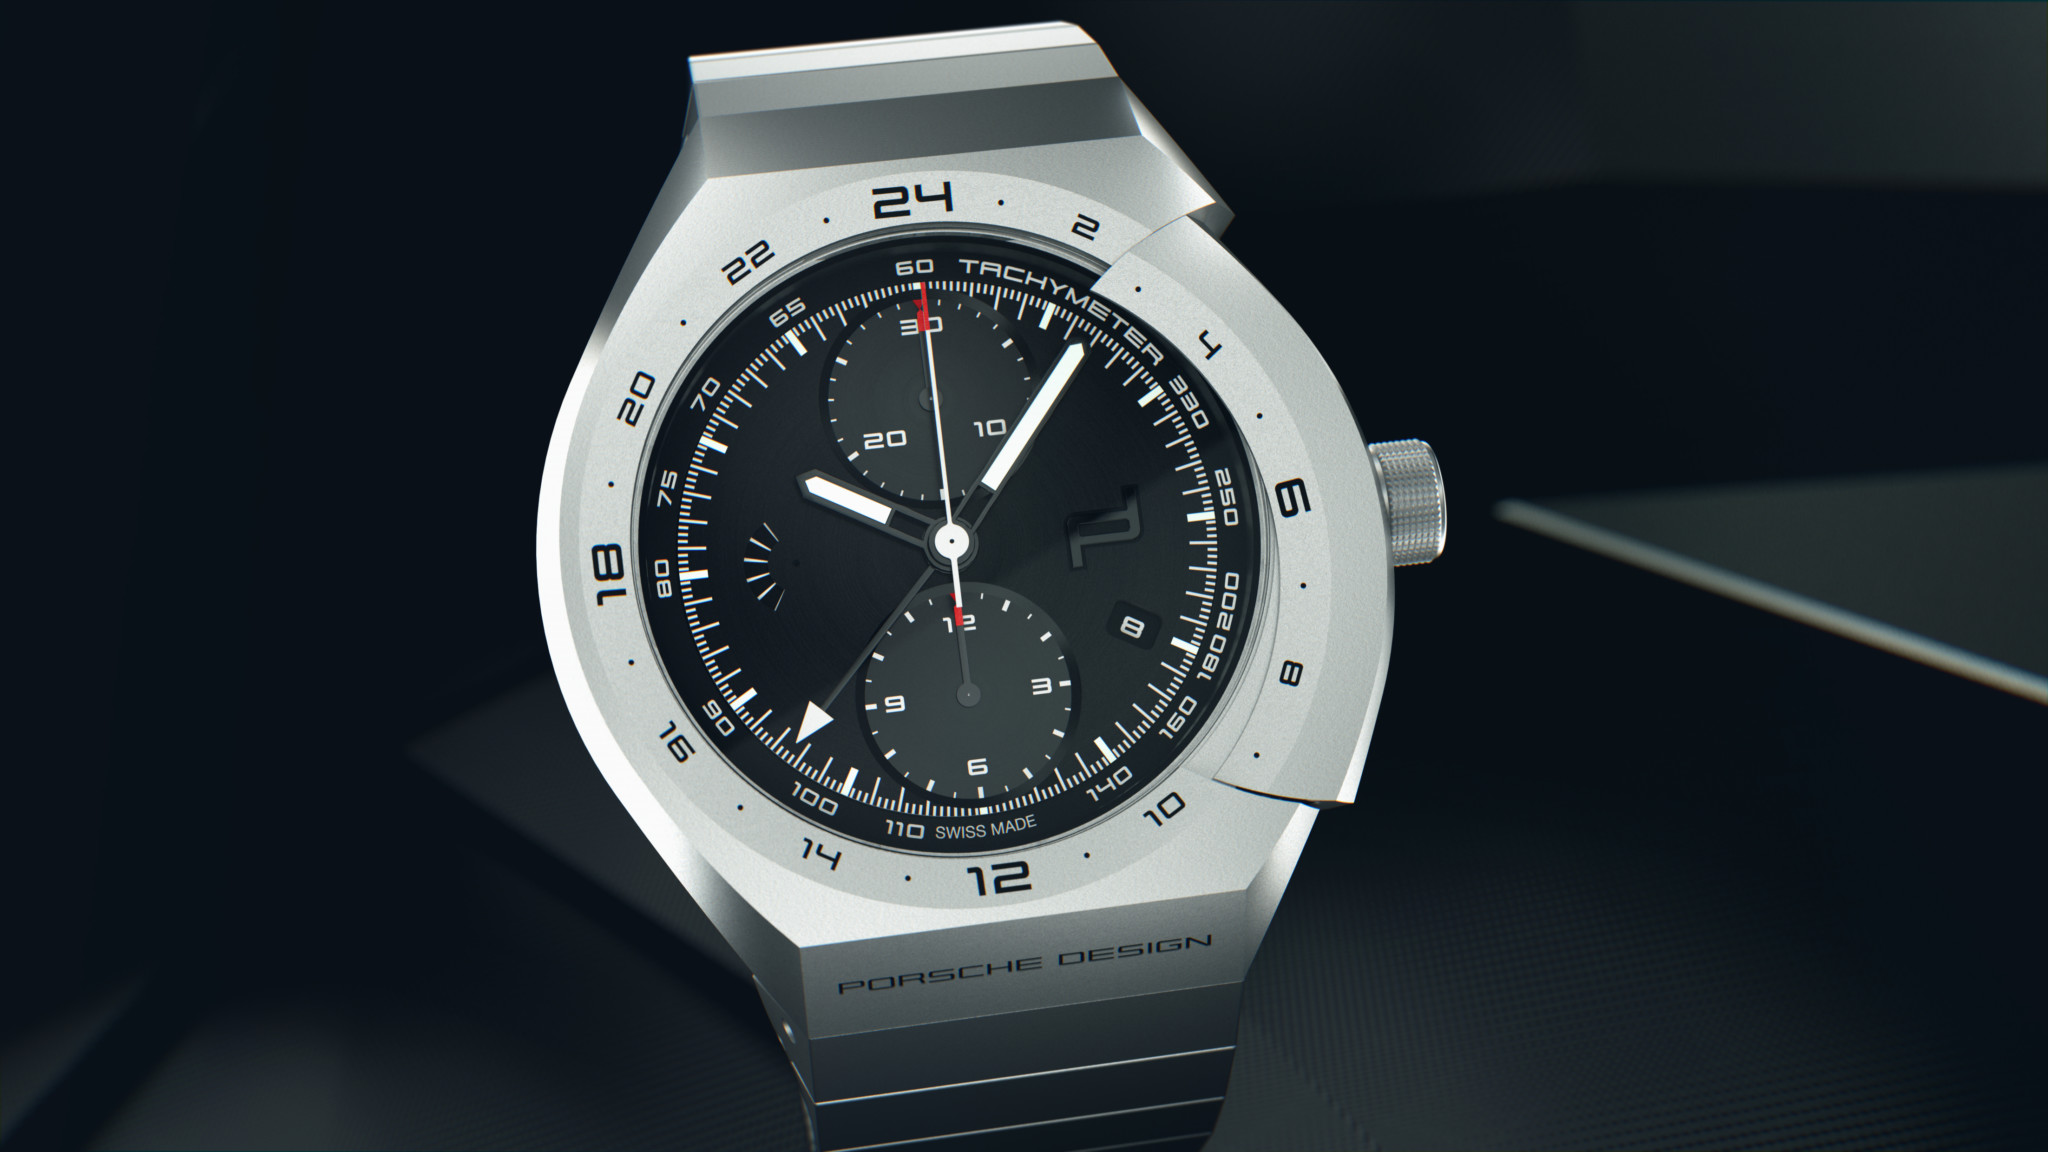 Porsche Design MONOBLOC ACTUATOR_Start_Stop